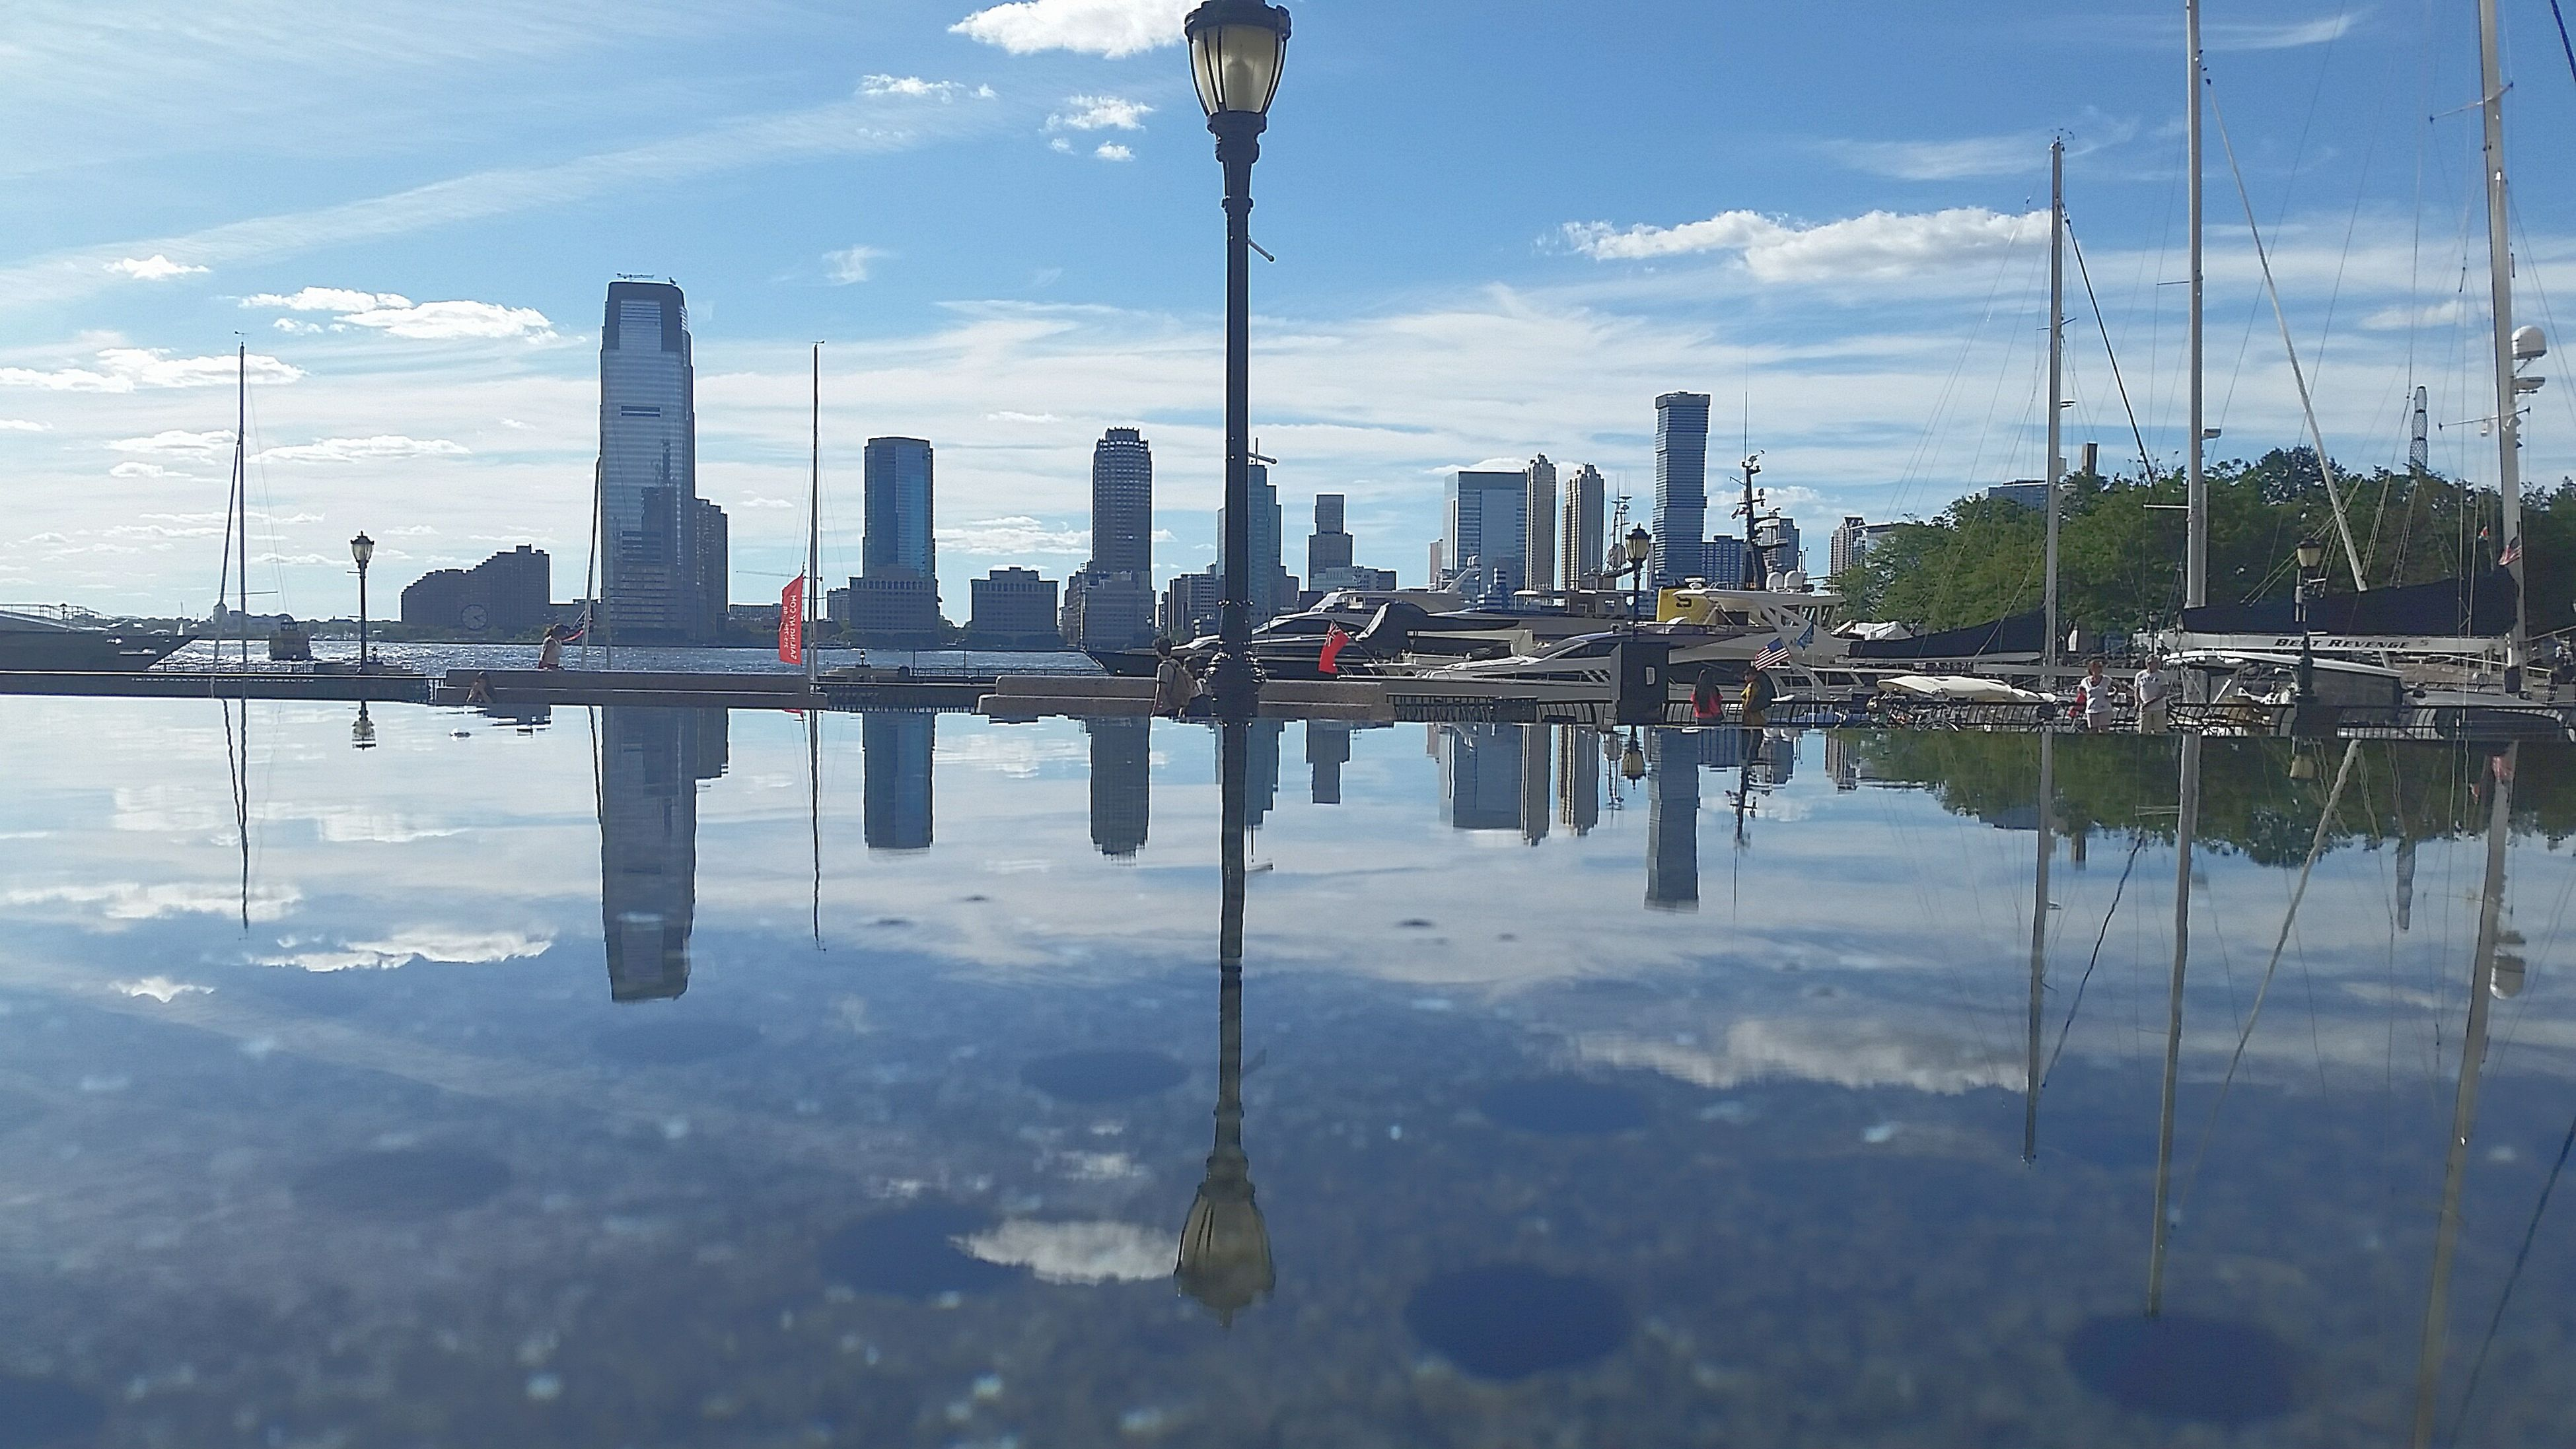 water, reflection, waterfront, sky, lake, sailboat, standing water, calm, cloud - sky, cloud, tranquil scene, tranquility, day, scenics, growth, skyscraper, tall, reflection lake, building story, development, vacations